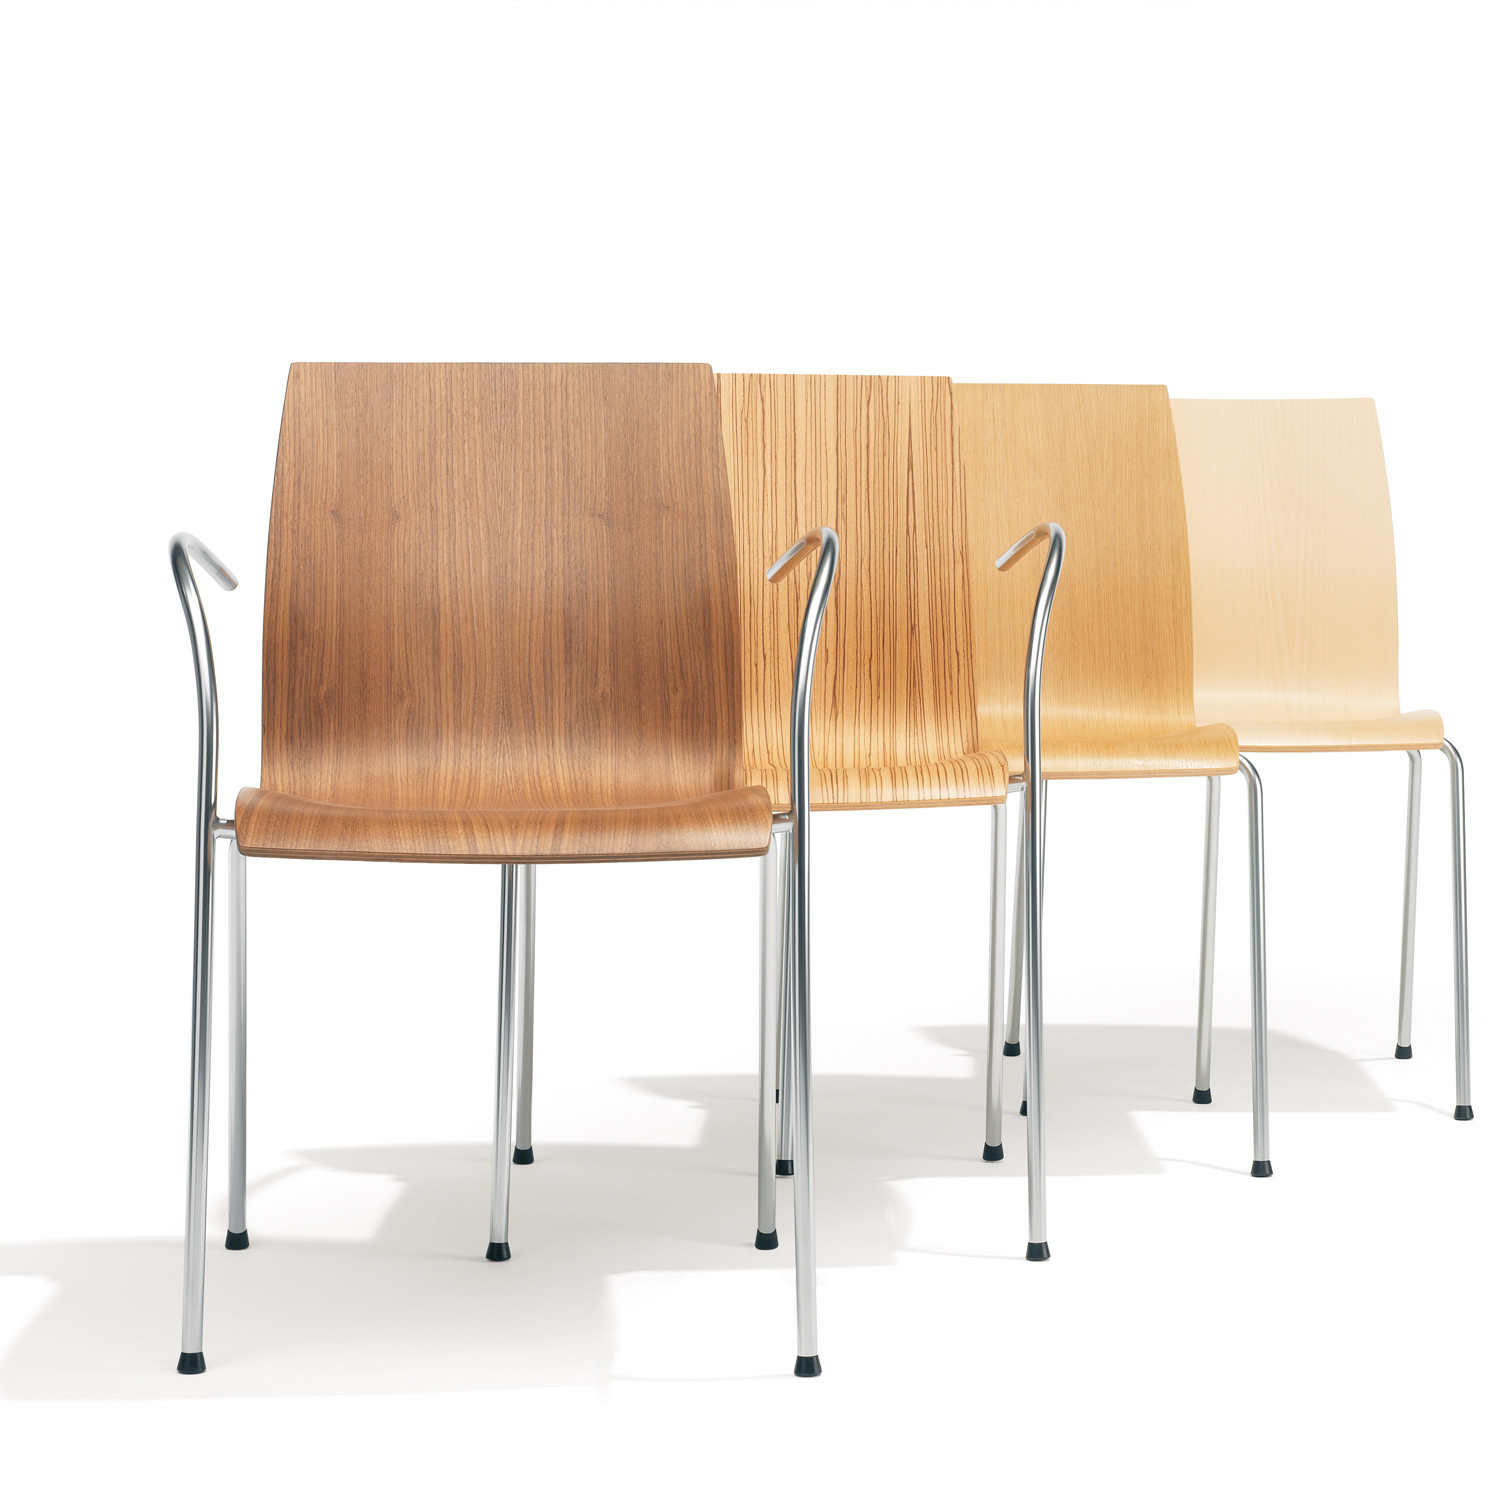 Robert de le Roi 1100 Trio Chairs for Kusch+Co